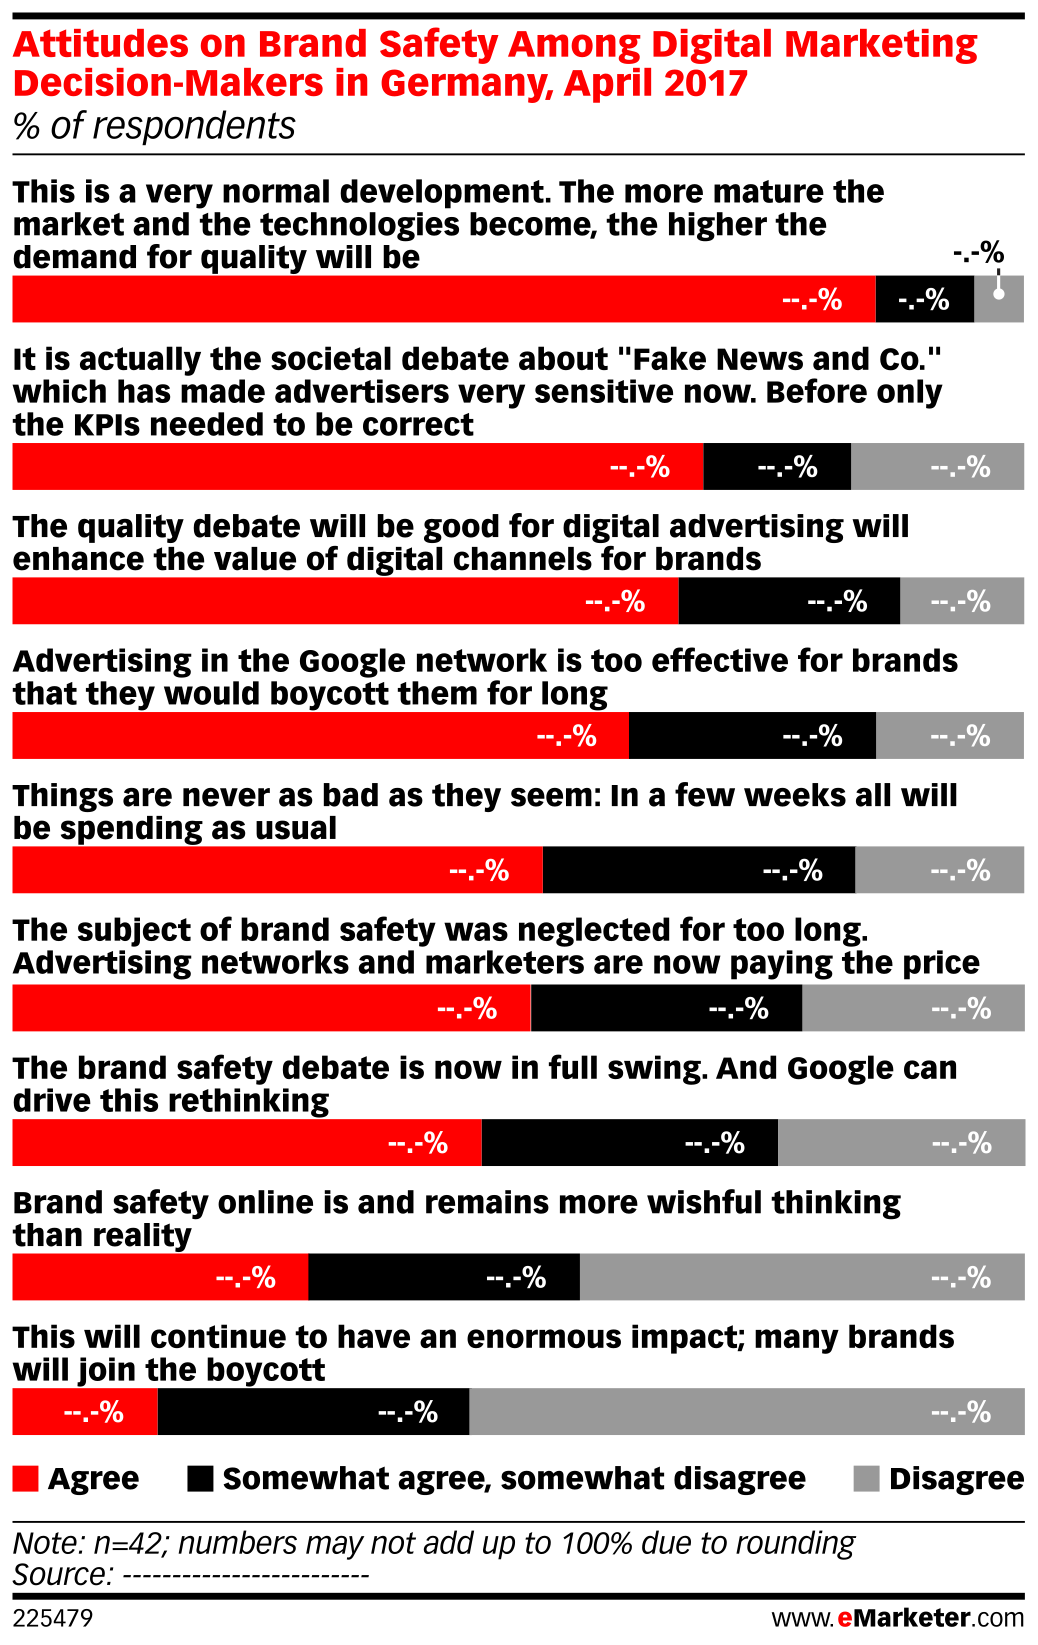 Attitudes on Brand Safety Among Digital Marketing Decision-Makers in Germany, April 2017 (% of respondents)